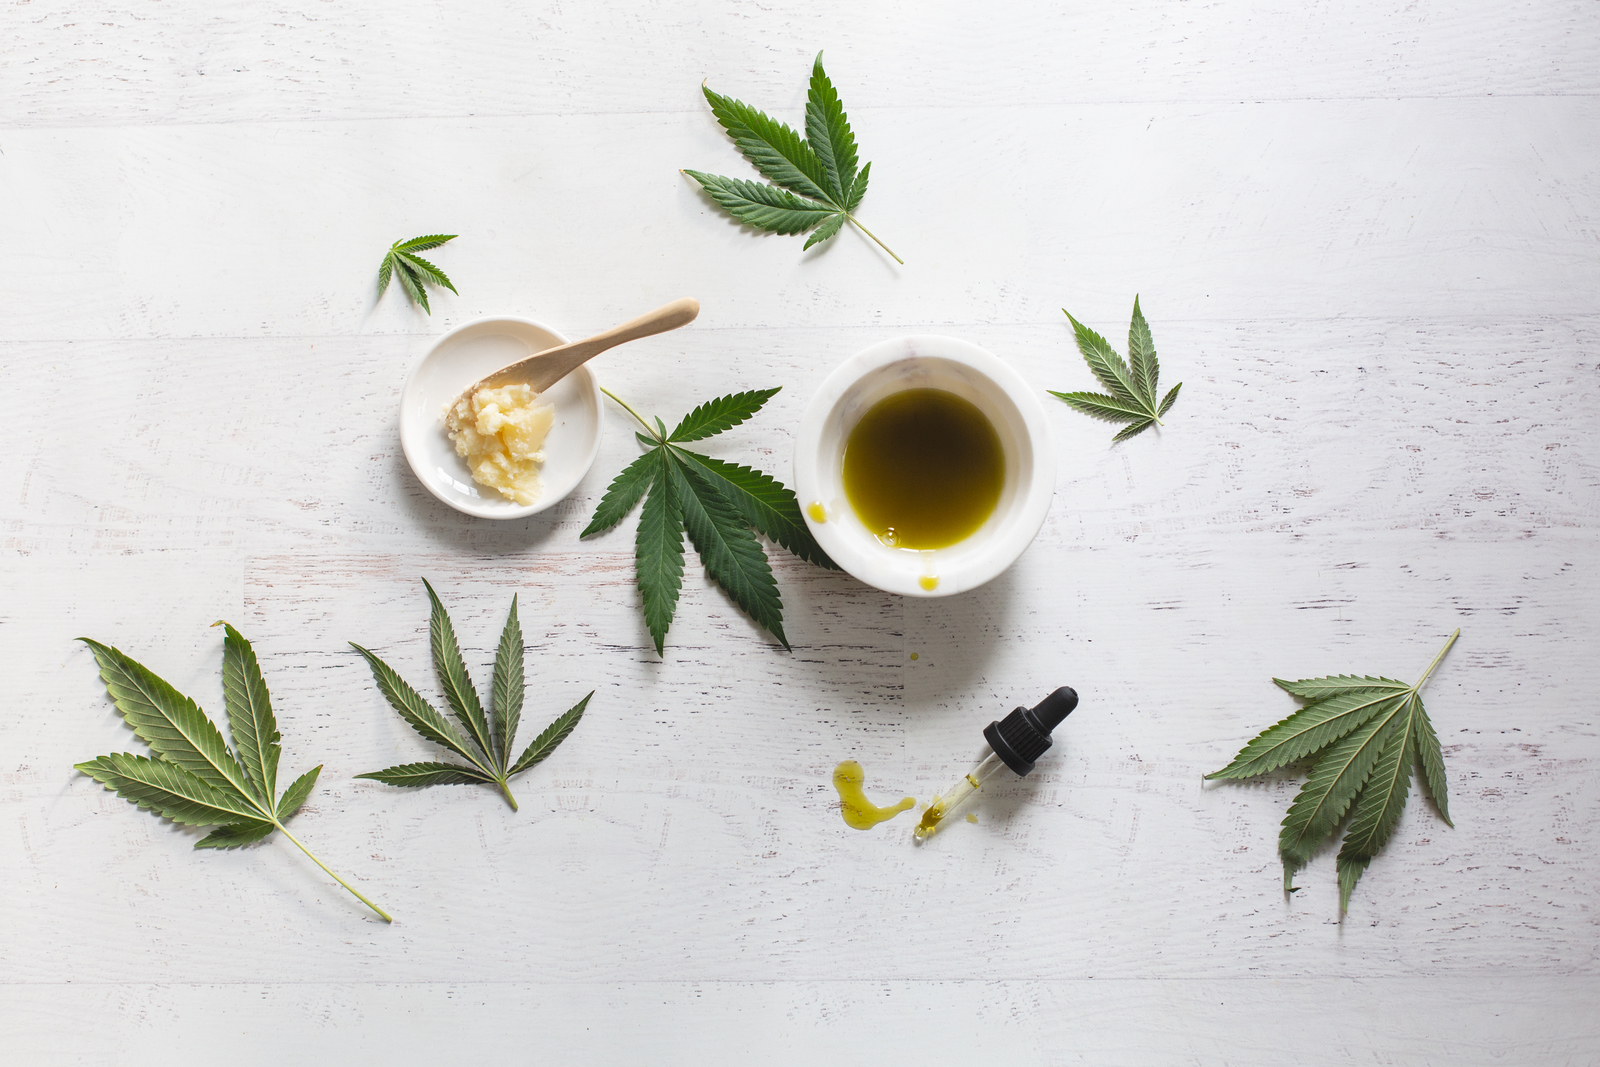 The Best Organic CBD Products for Your Self-Care on Canabyst